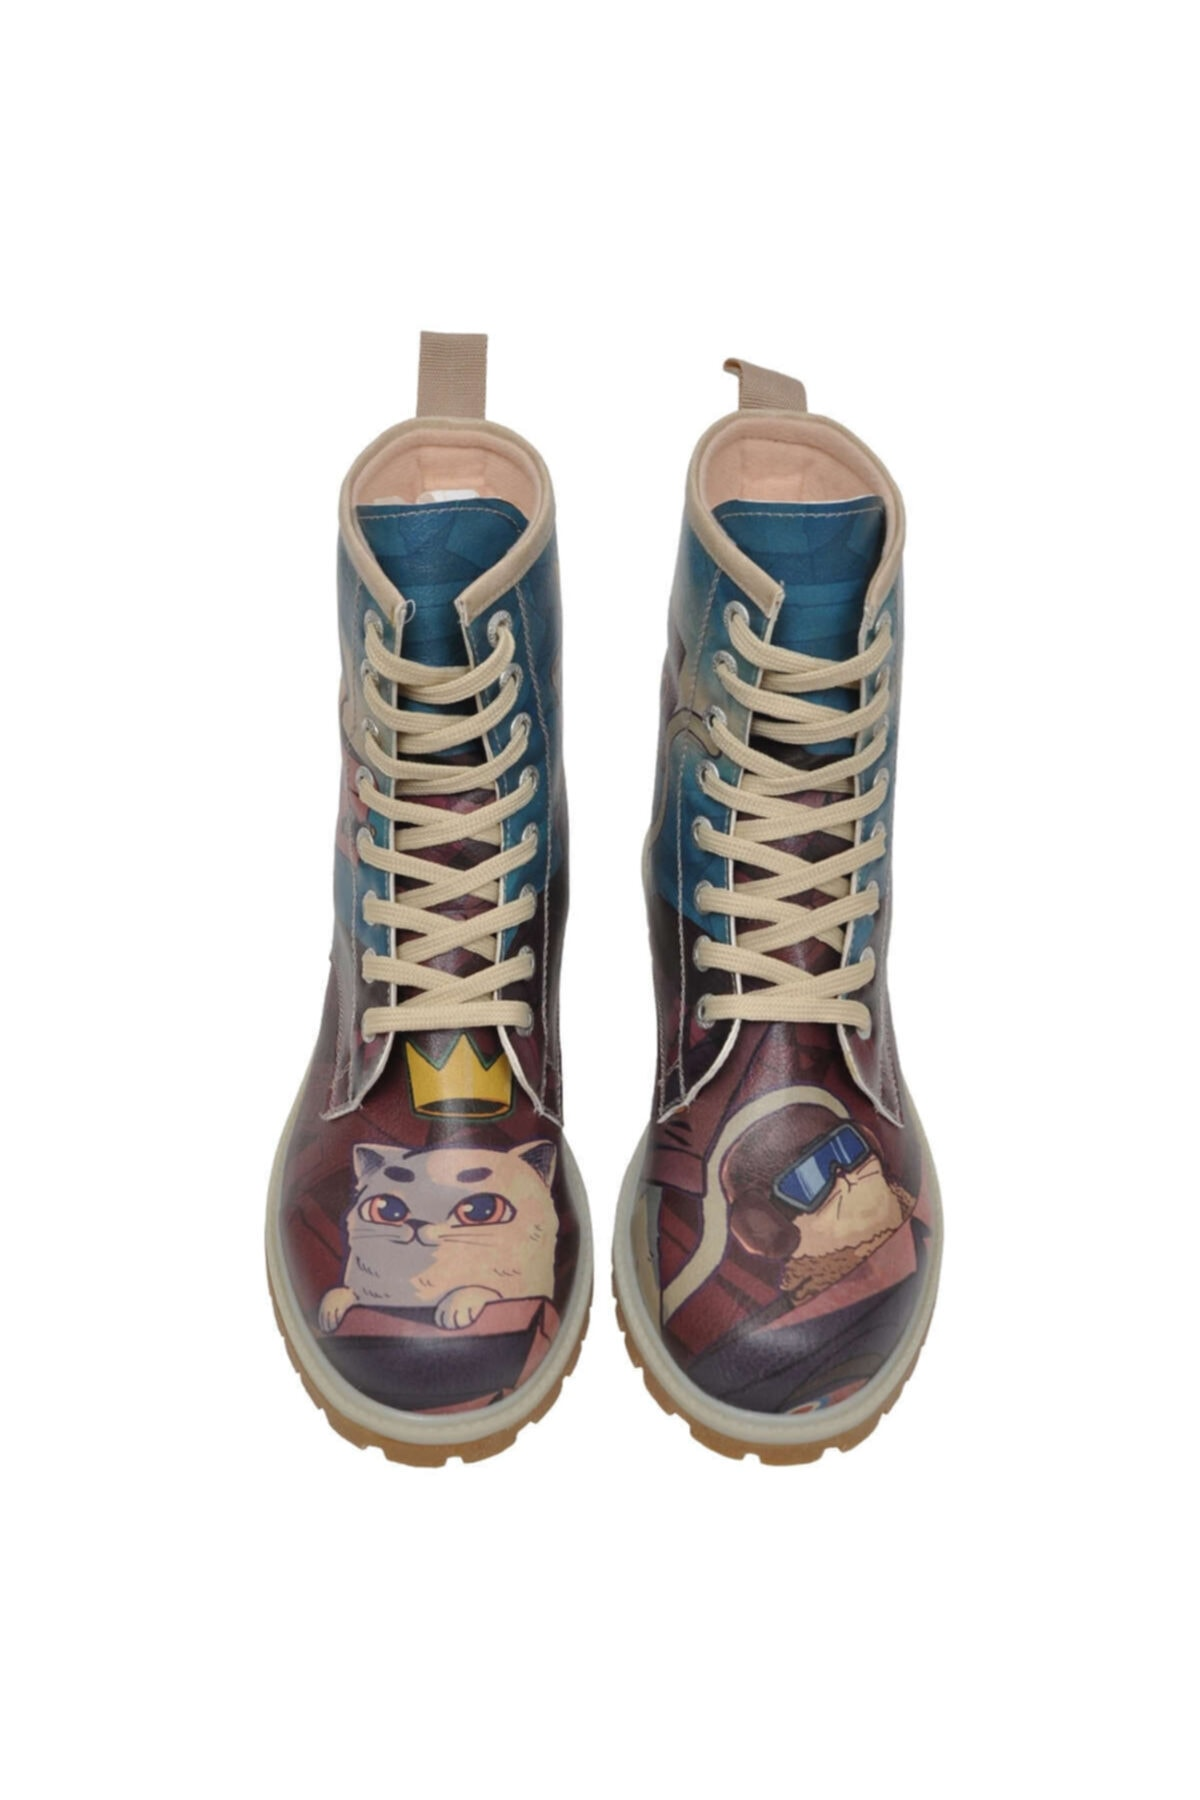 Dogo King Of The Hill / Long Boots Kadin Bot 2